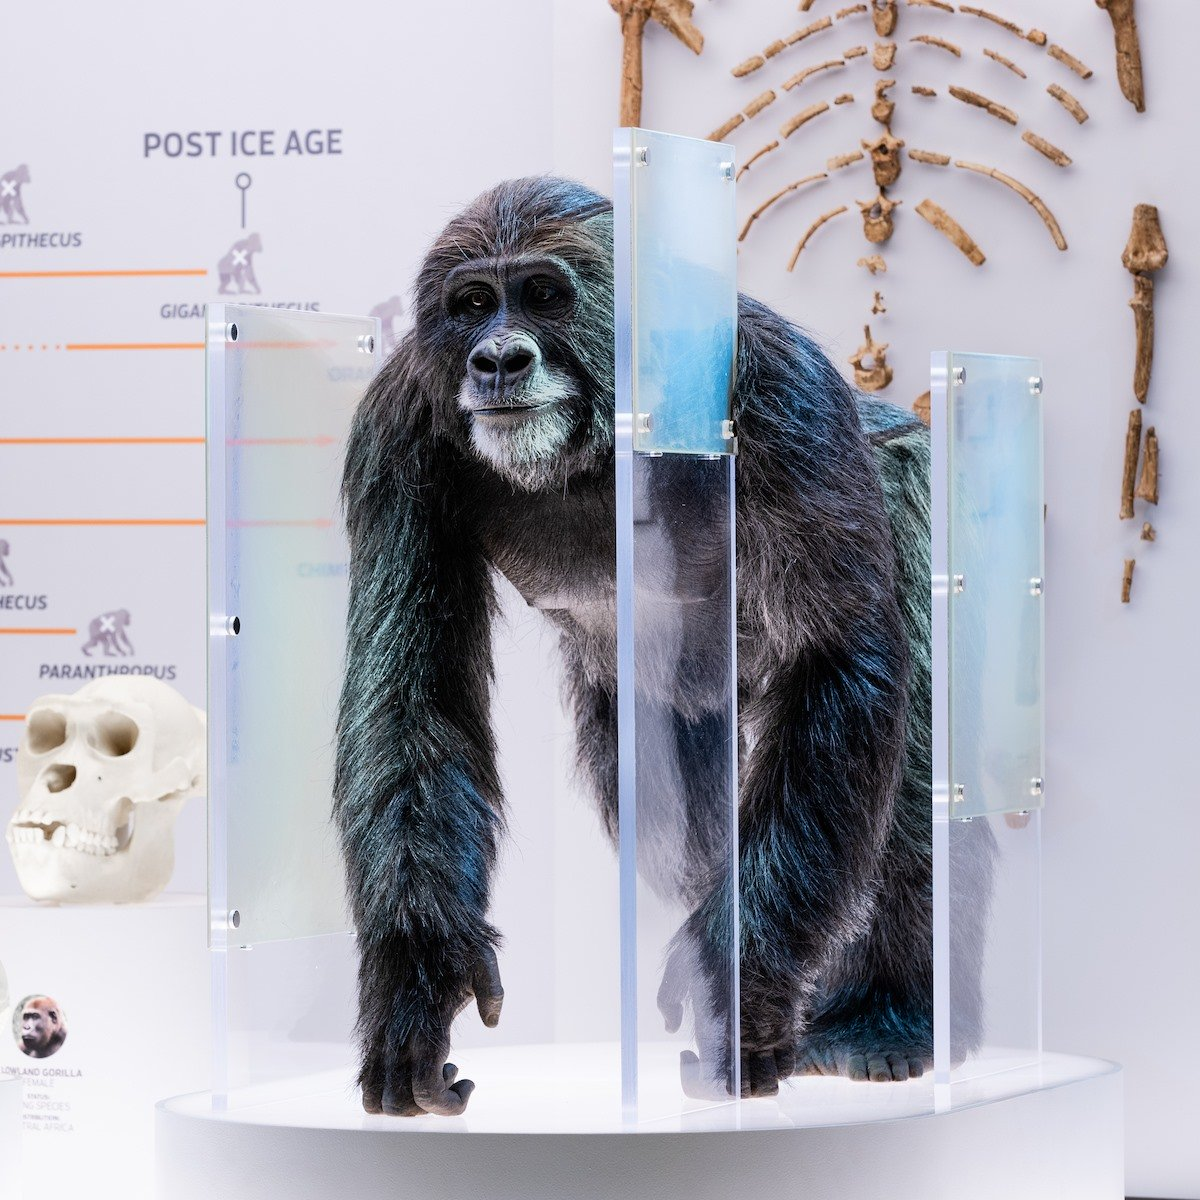 New Ape Exhibit